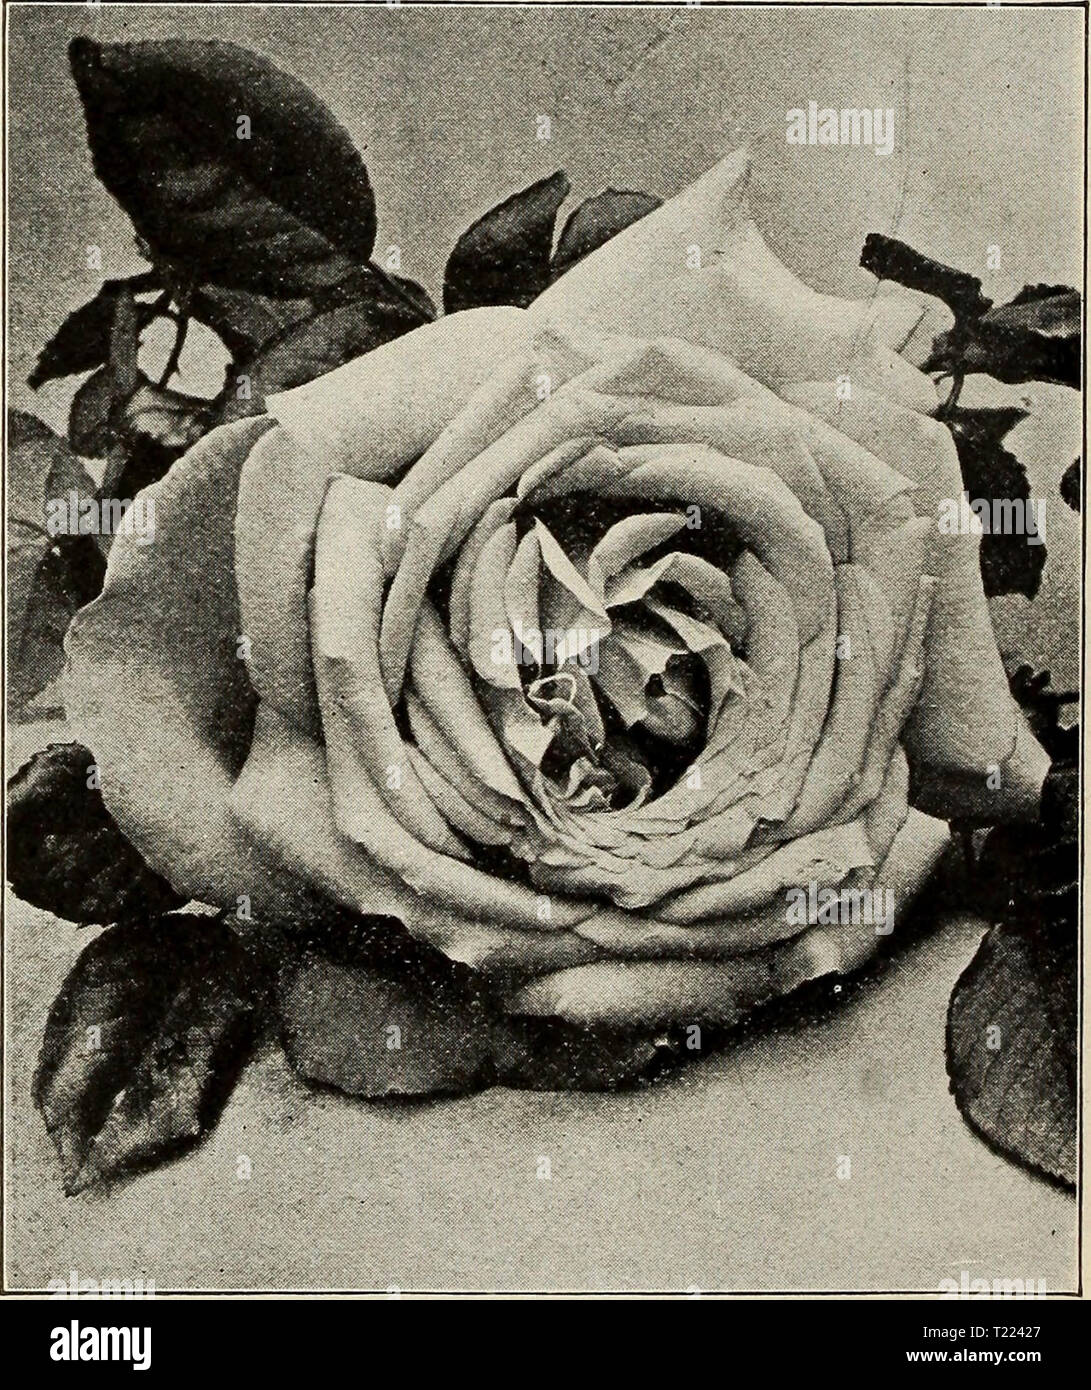 Archive image from page 49 of Dingee guide to rose culture Dingee guide to rose culture : for more than 60 years an authority 1918  dingeeguidetoros19ding_10 Year: 1918  This new Rose is an extremely strong growing variety, producing heavy stems, with large, healthy foliage and flowers almost the equal and style of Helen Gould, but more double; deep rose, with silvery rose center. A bright clear garden Rose, and a prolific bloomer, especially good for outdoor cultivation. Delightfully fragrant. MADAME JOSEPH SCHWARTZ—Flowers pure white, tinged and shaded with pure yellow and rosy blush; very f - Stock Image